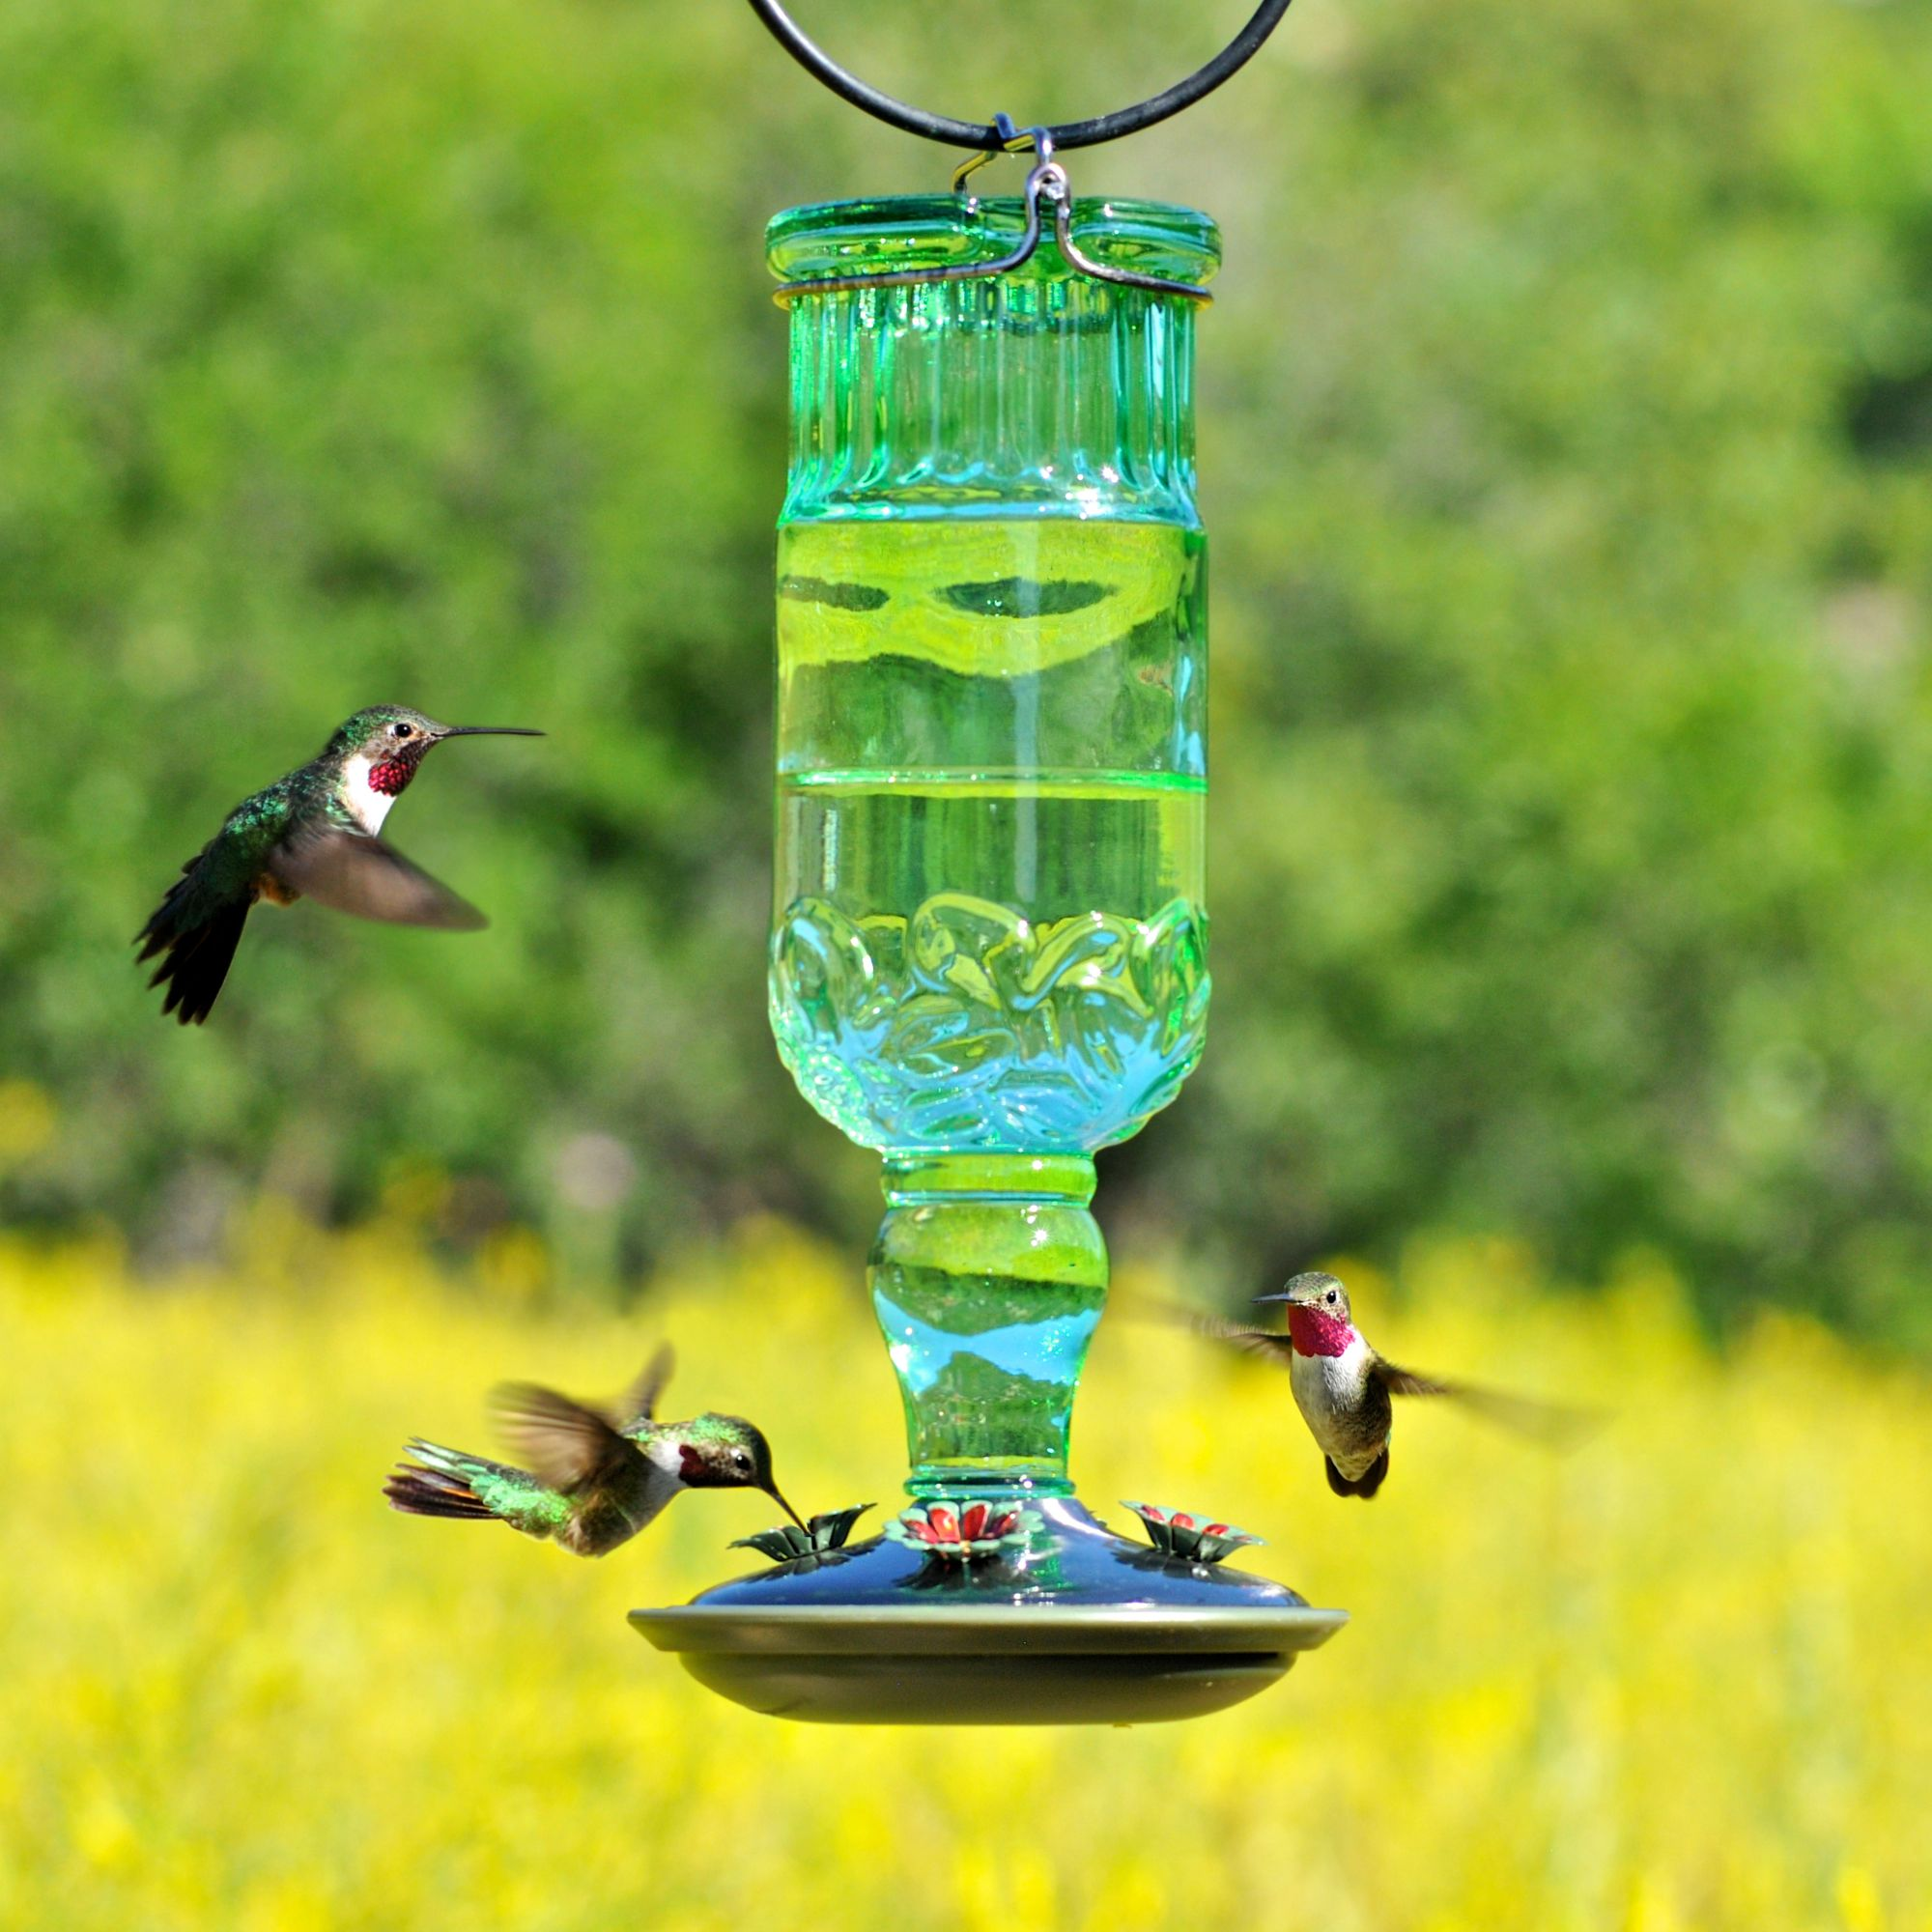 wondrous garden feeder hummingbird stake sunjoy bird stakes decorative feeders full for image